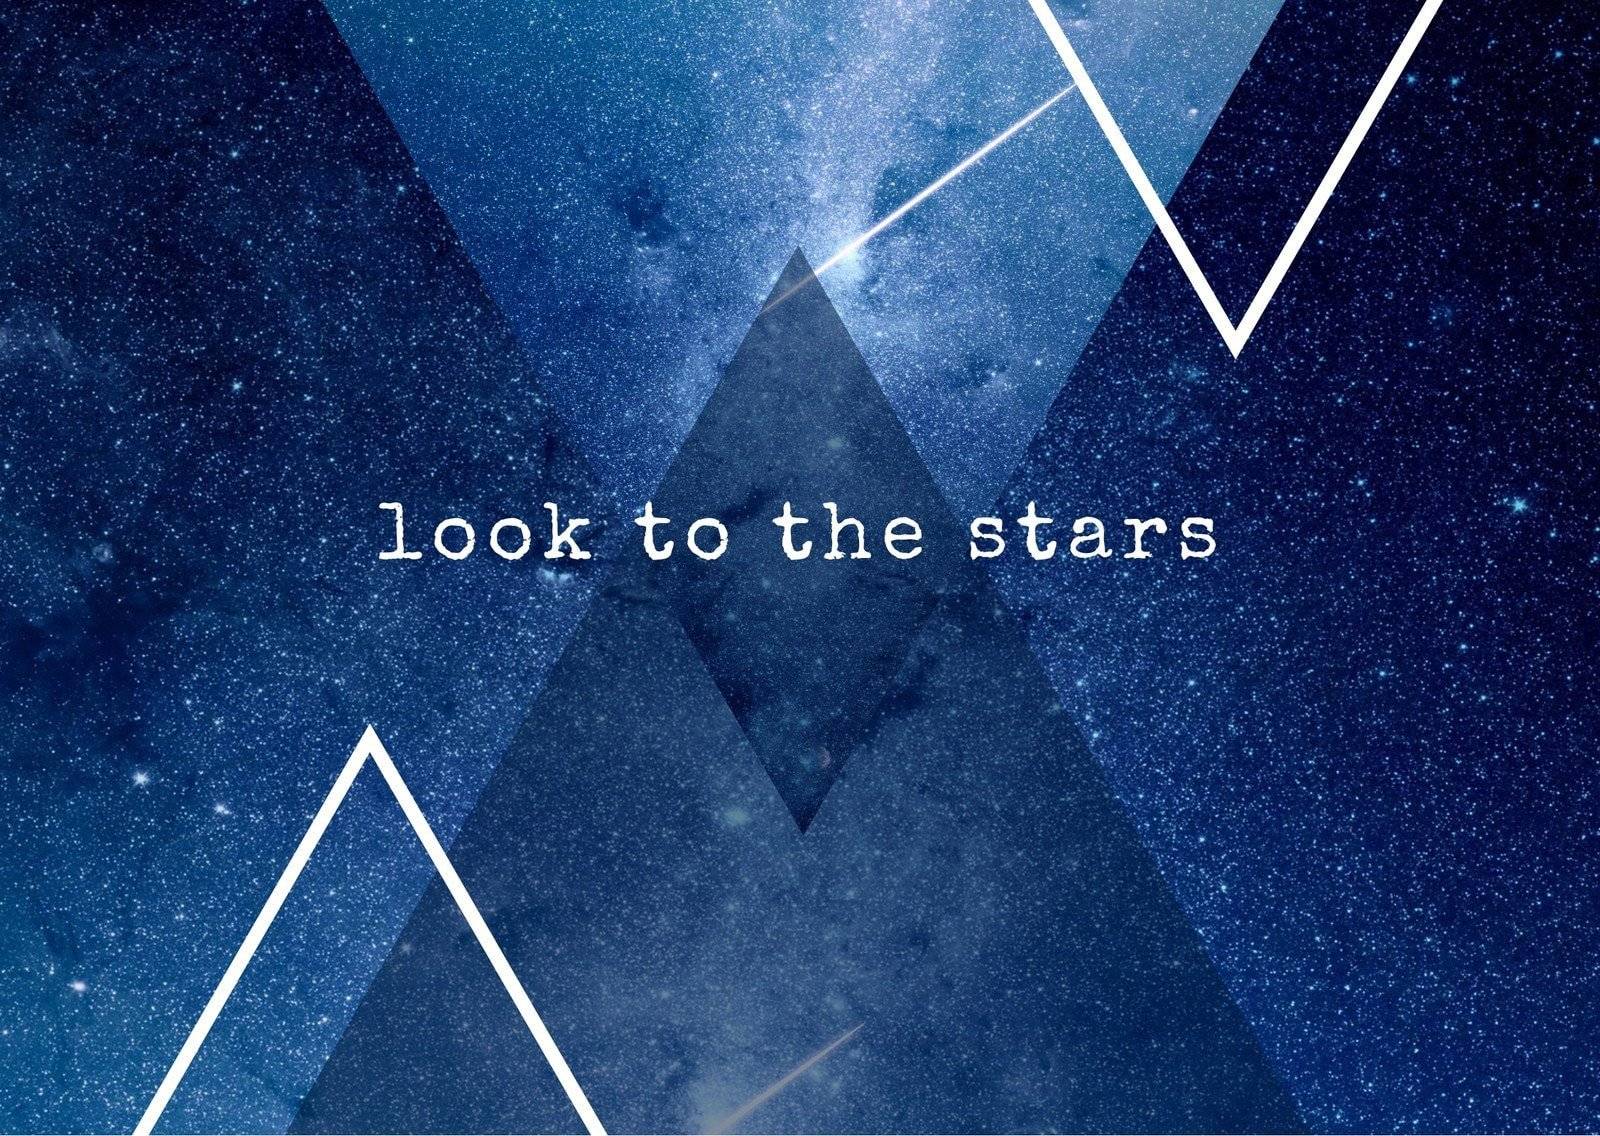 Blue Stars Space Triangles Picture Postcard